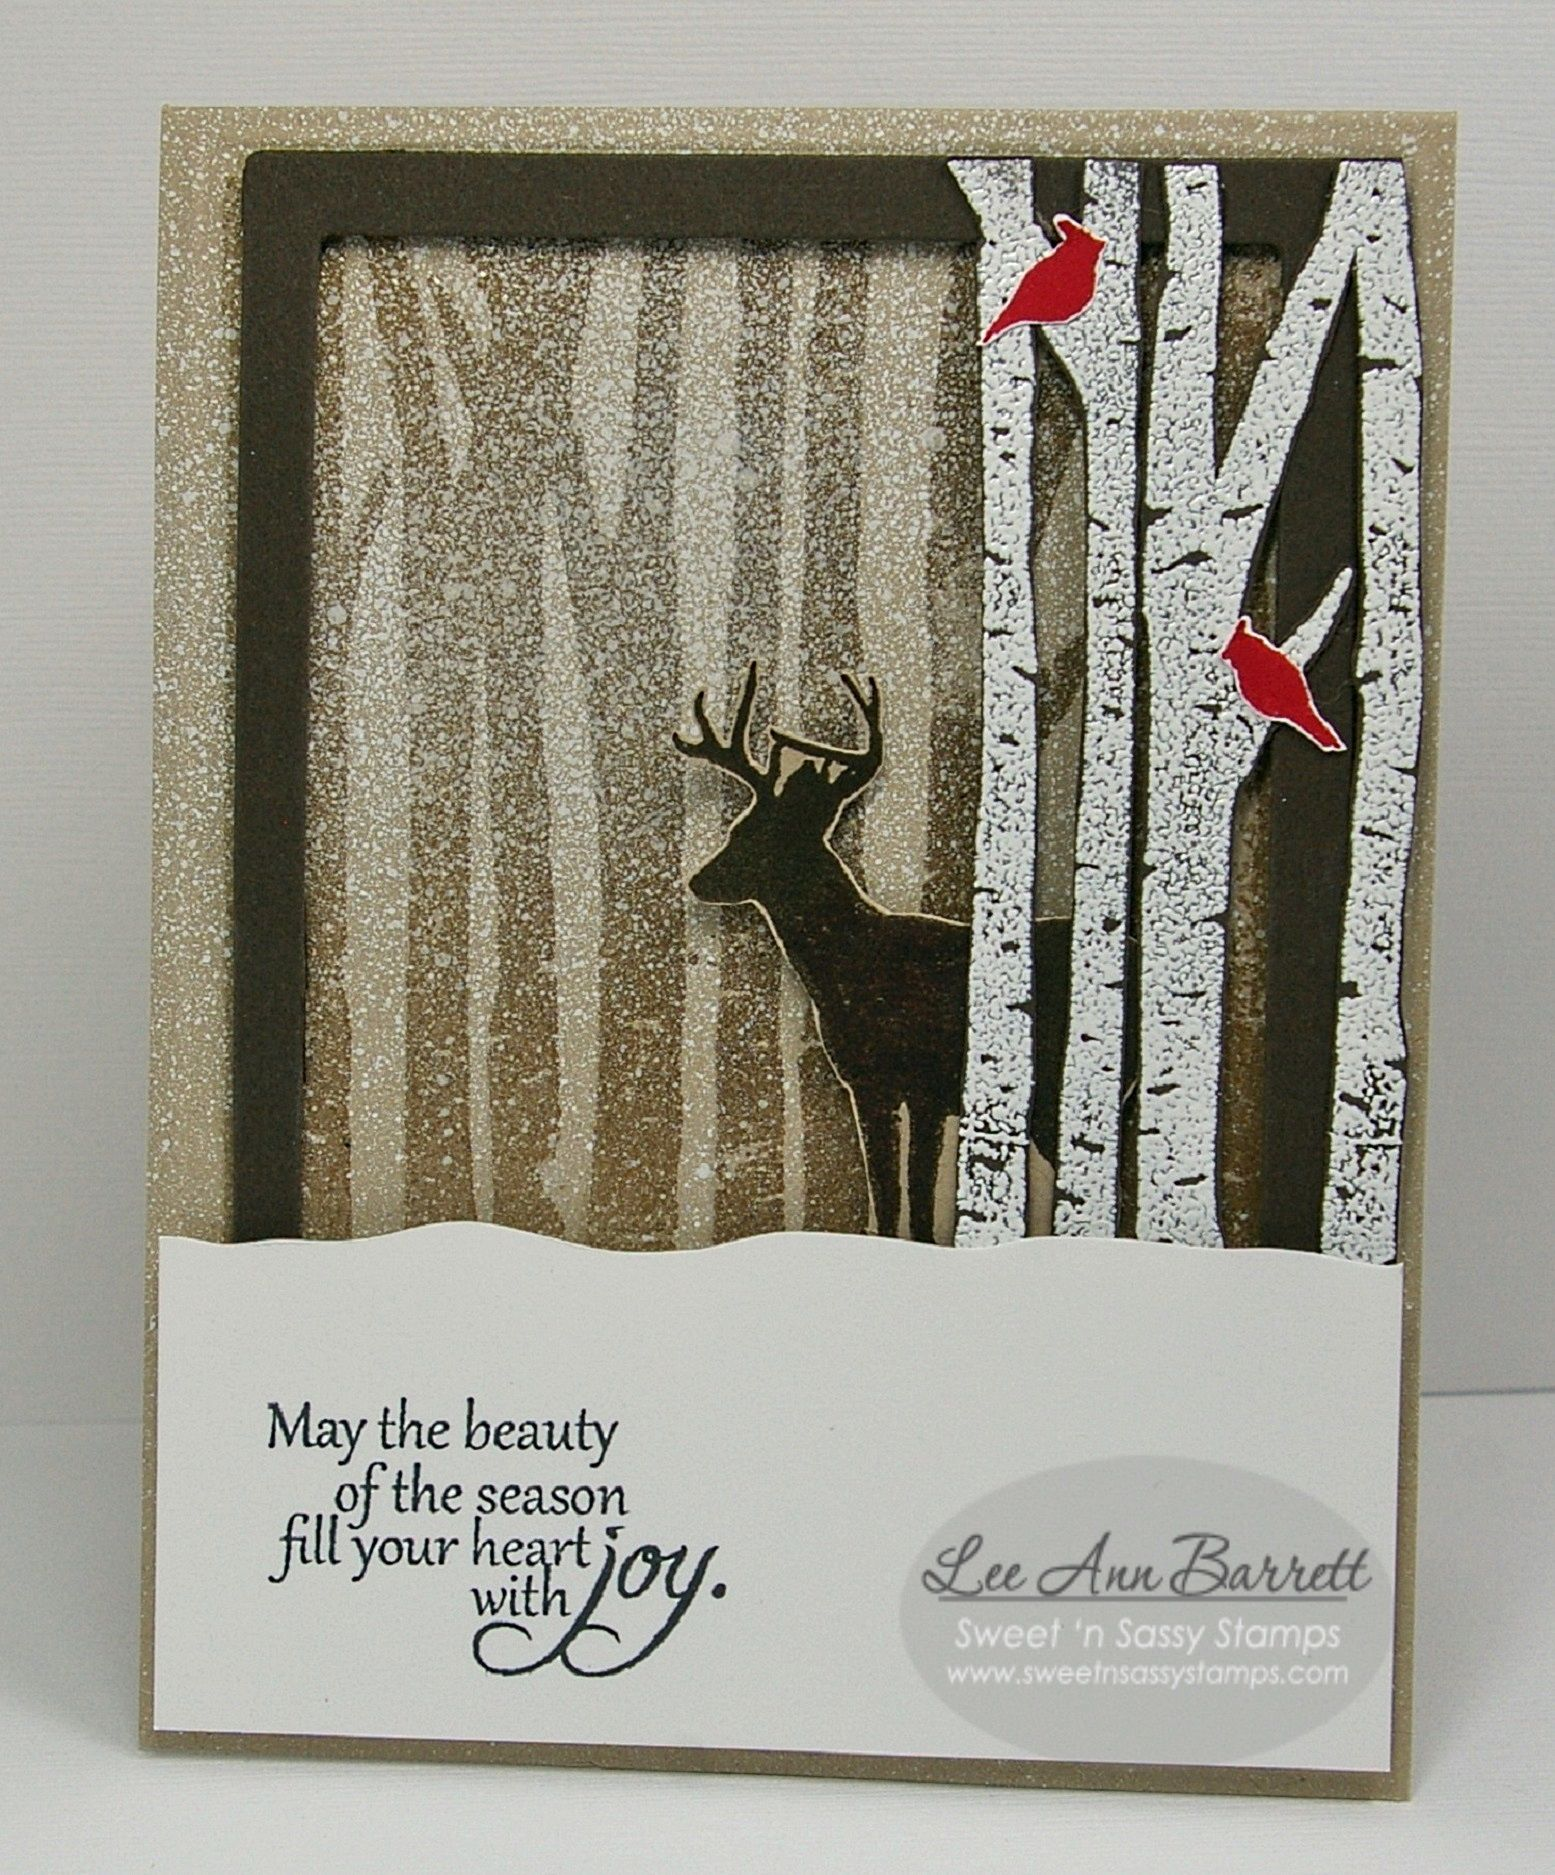 68% Of All Greeting Cards Are Expected To Be Retailed